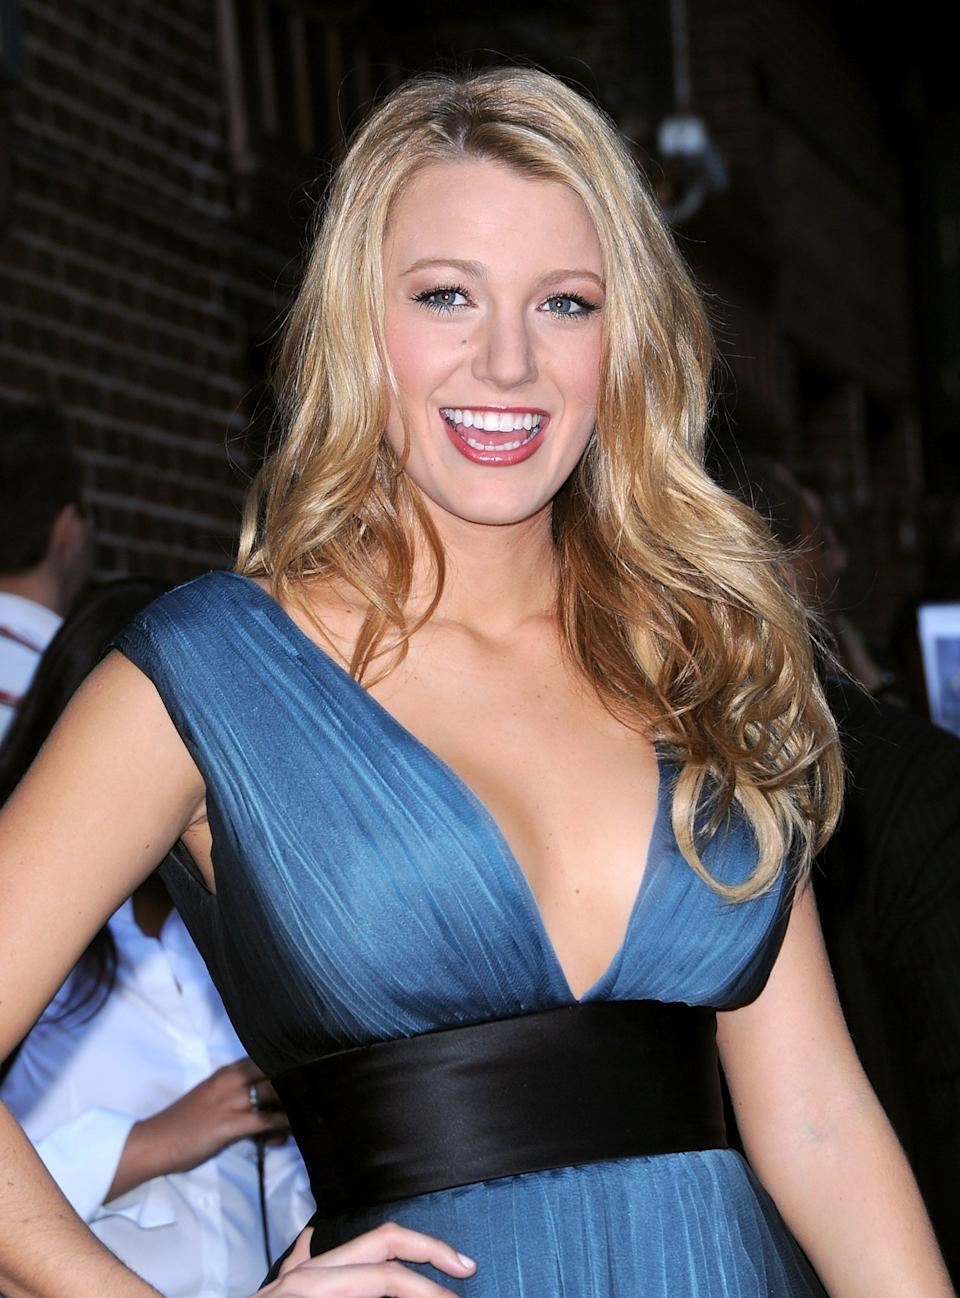 NEW YORK - AUGUST 28:  Blake Lively visits 'Late Show with David Letterman' at the Ed Sullivan Theatre on August 28, 2008 in New York City.  (Photo by James Devaney/WireImage)